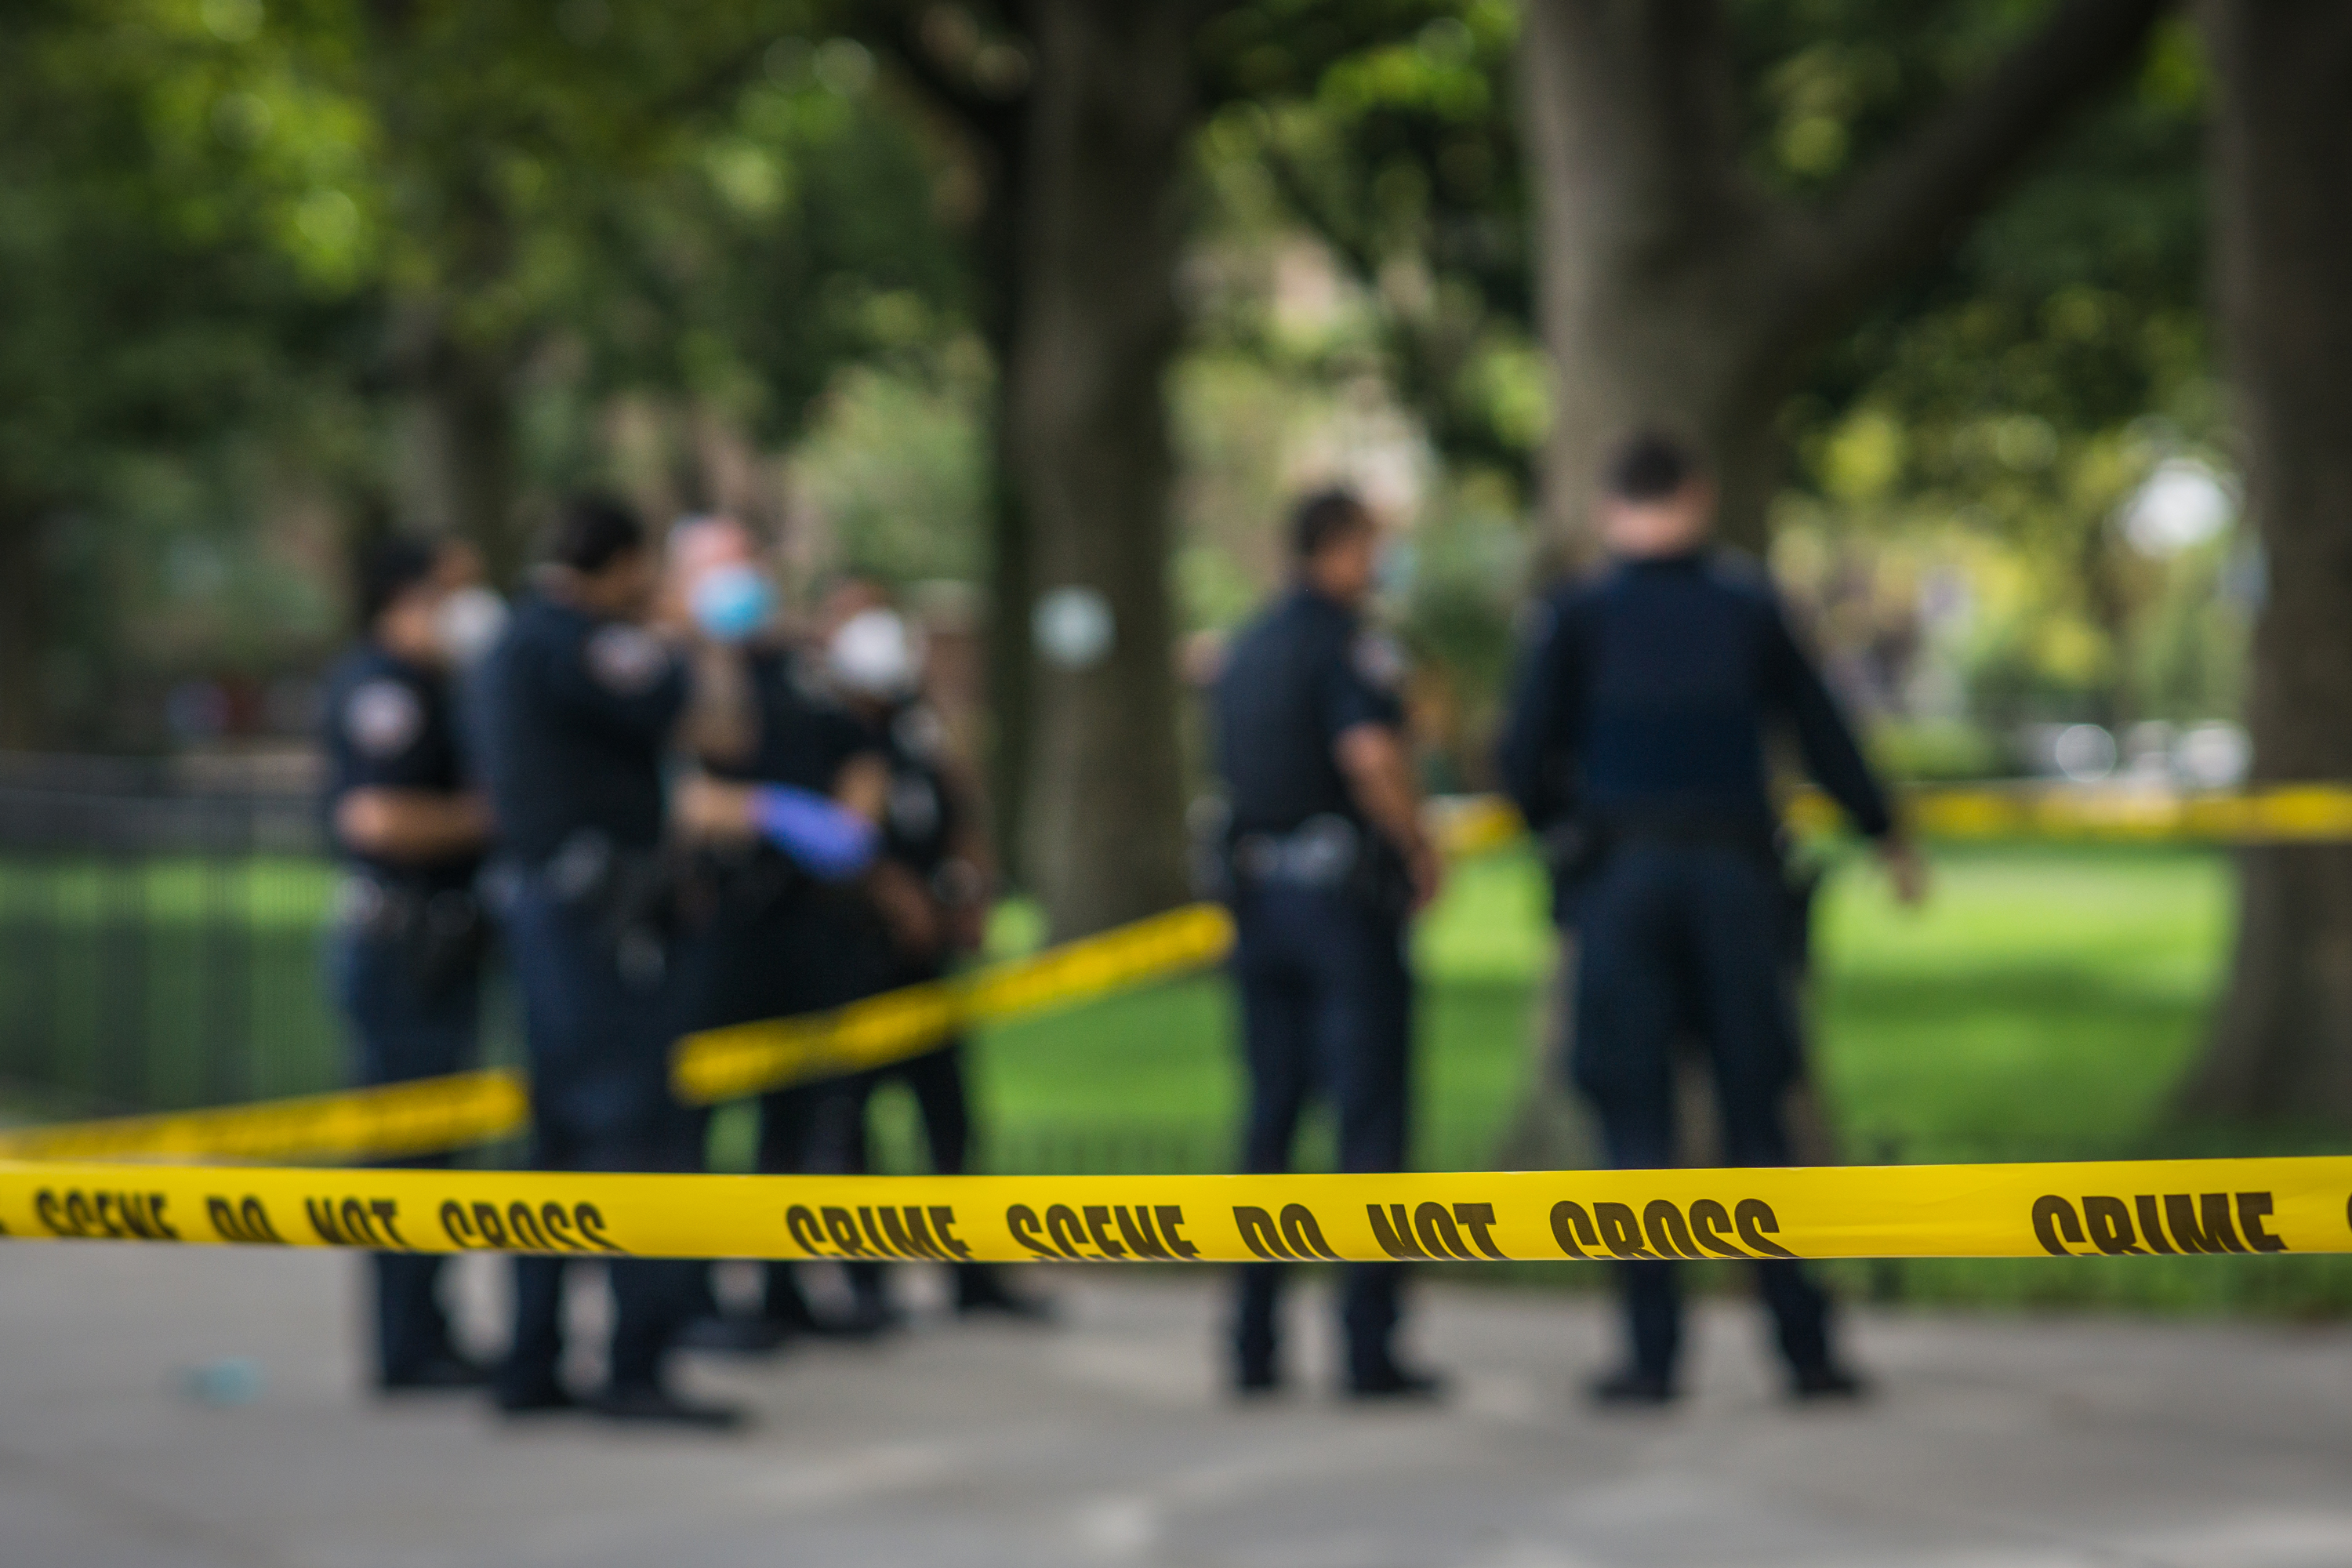 Crime scene tape surrounds police investigating a shooting in The Bronx, Sept. 13, 2020.